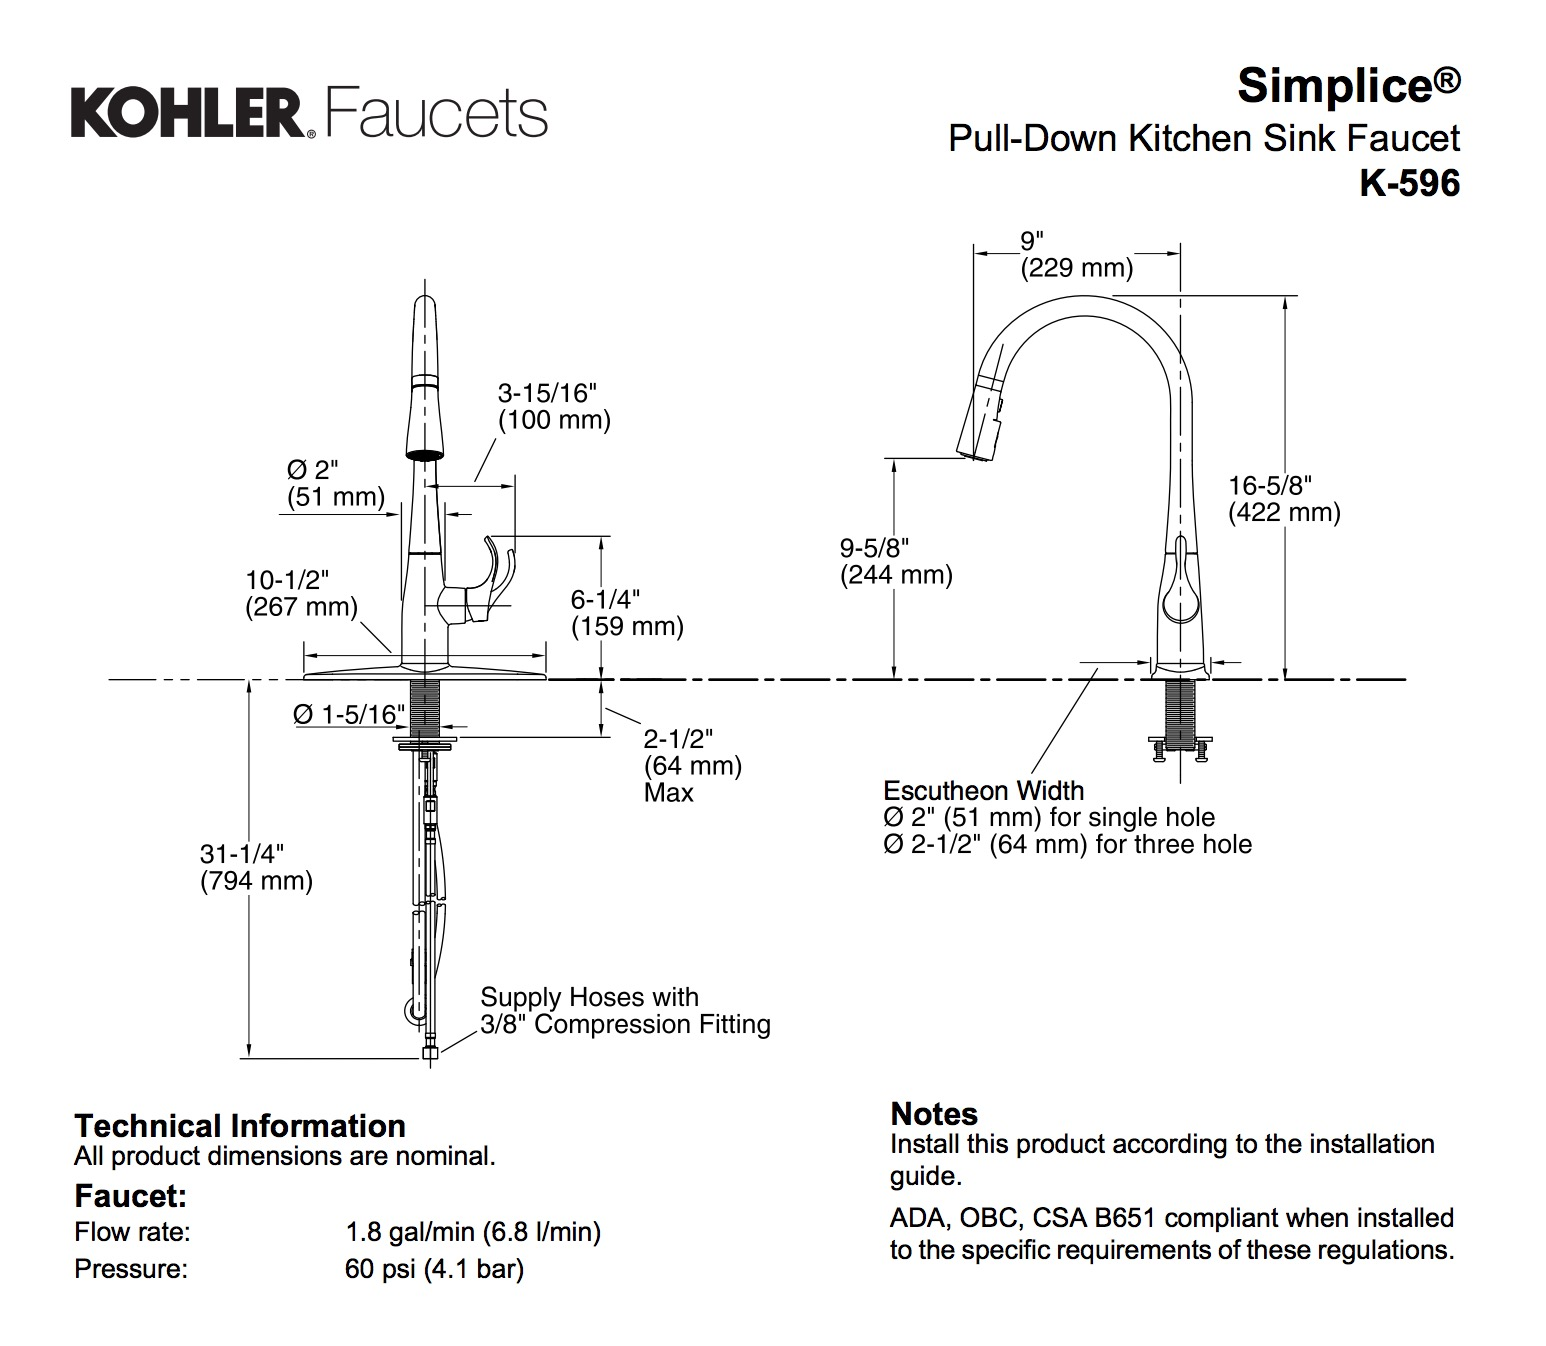 Kohler Kitchen Faucet Parts Diagram: Kohler K-596-CP Simplice Single Hole Pulldown Kitchen